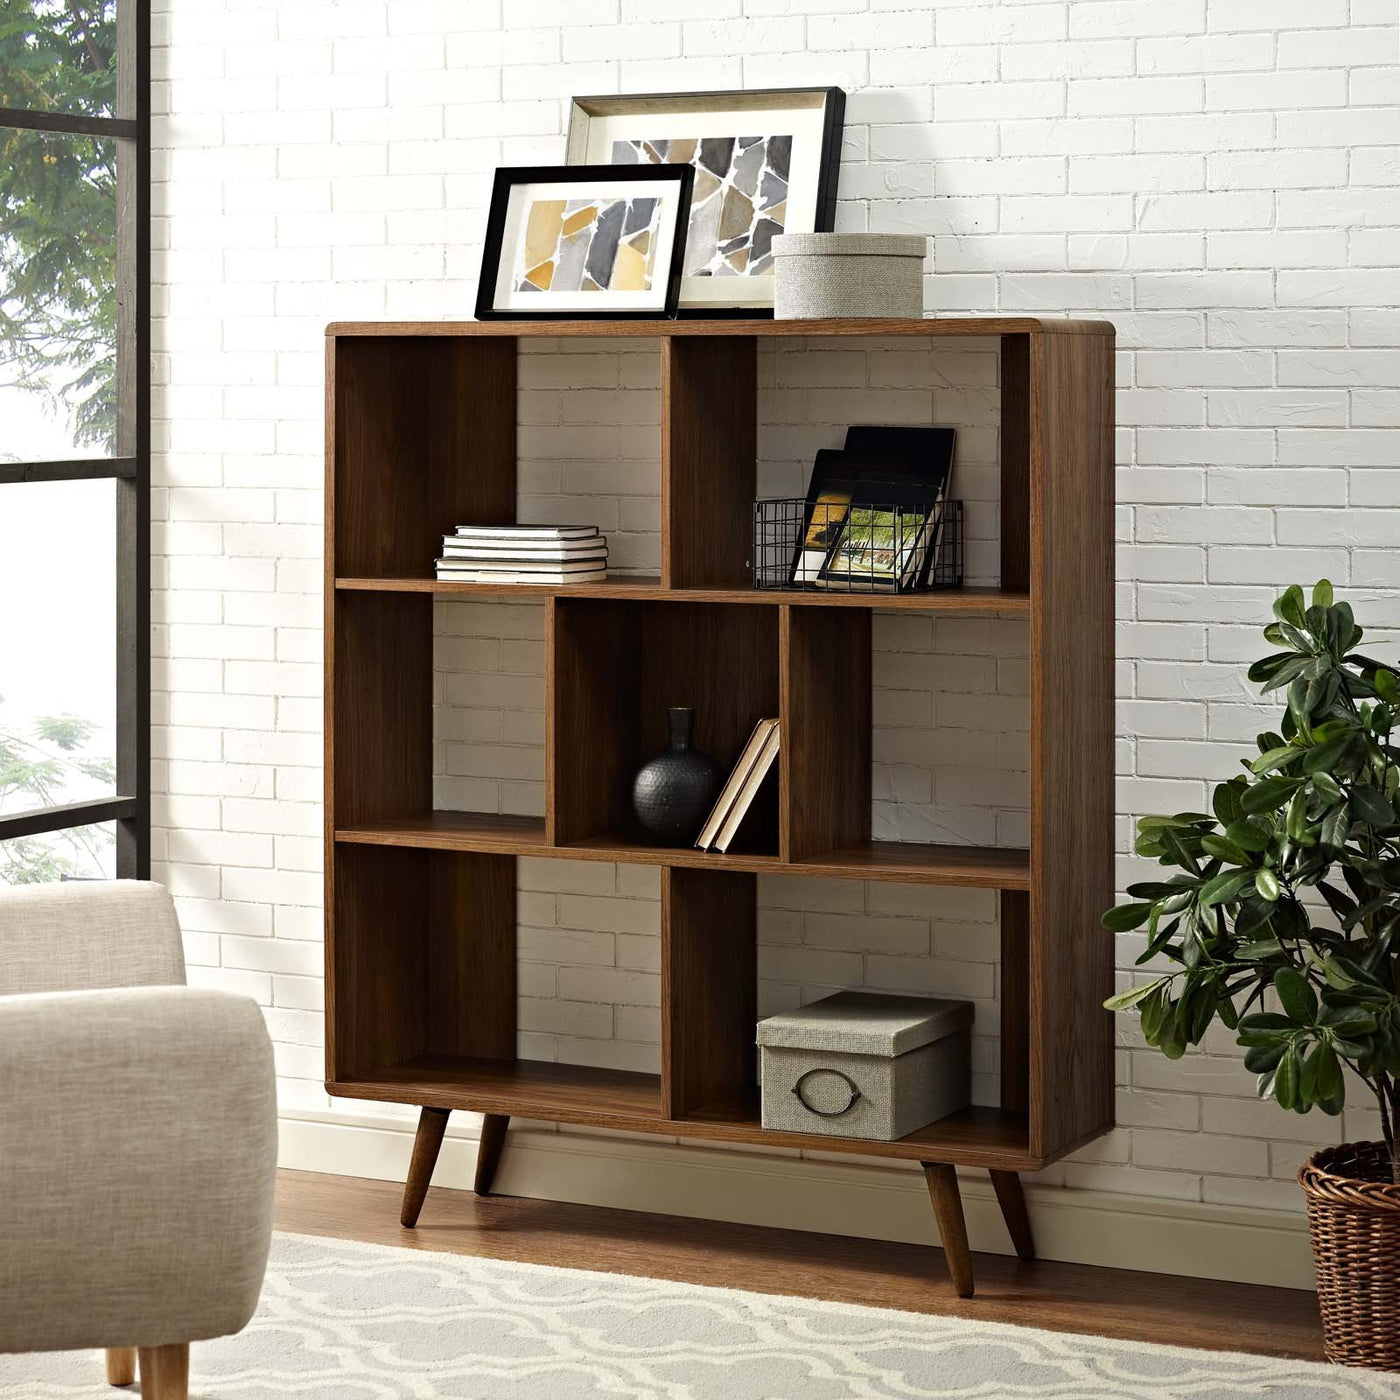 Bookcases & Shelving Collection